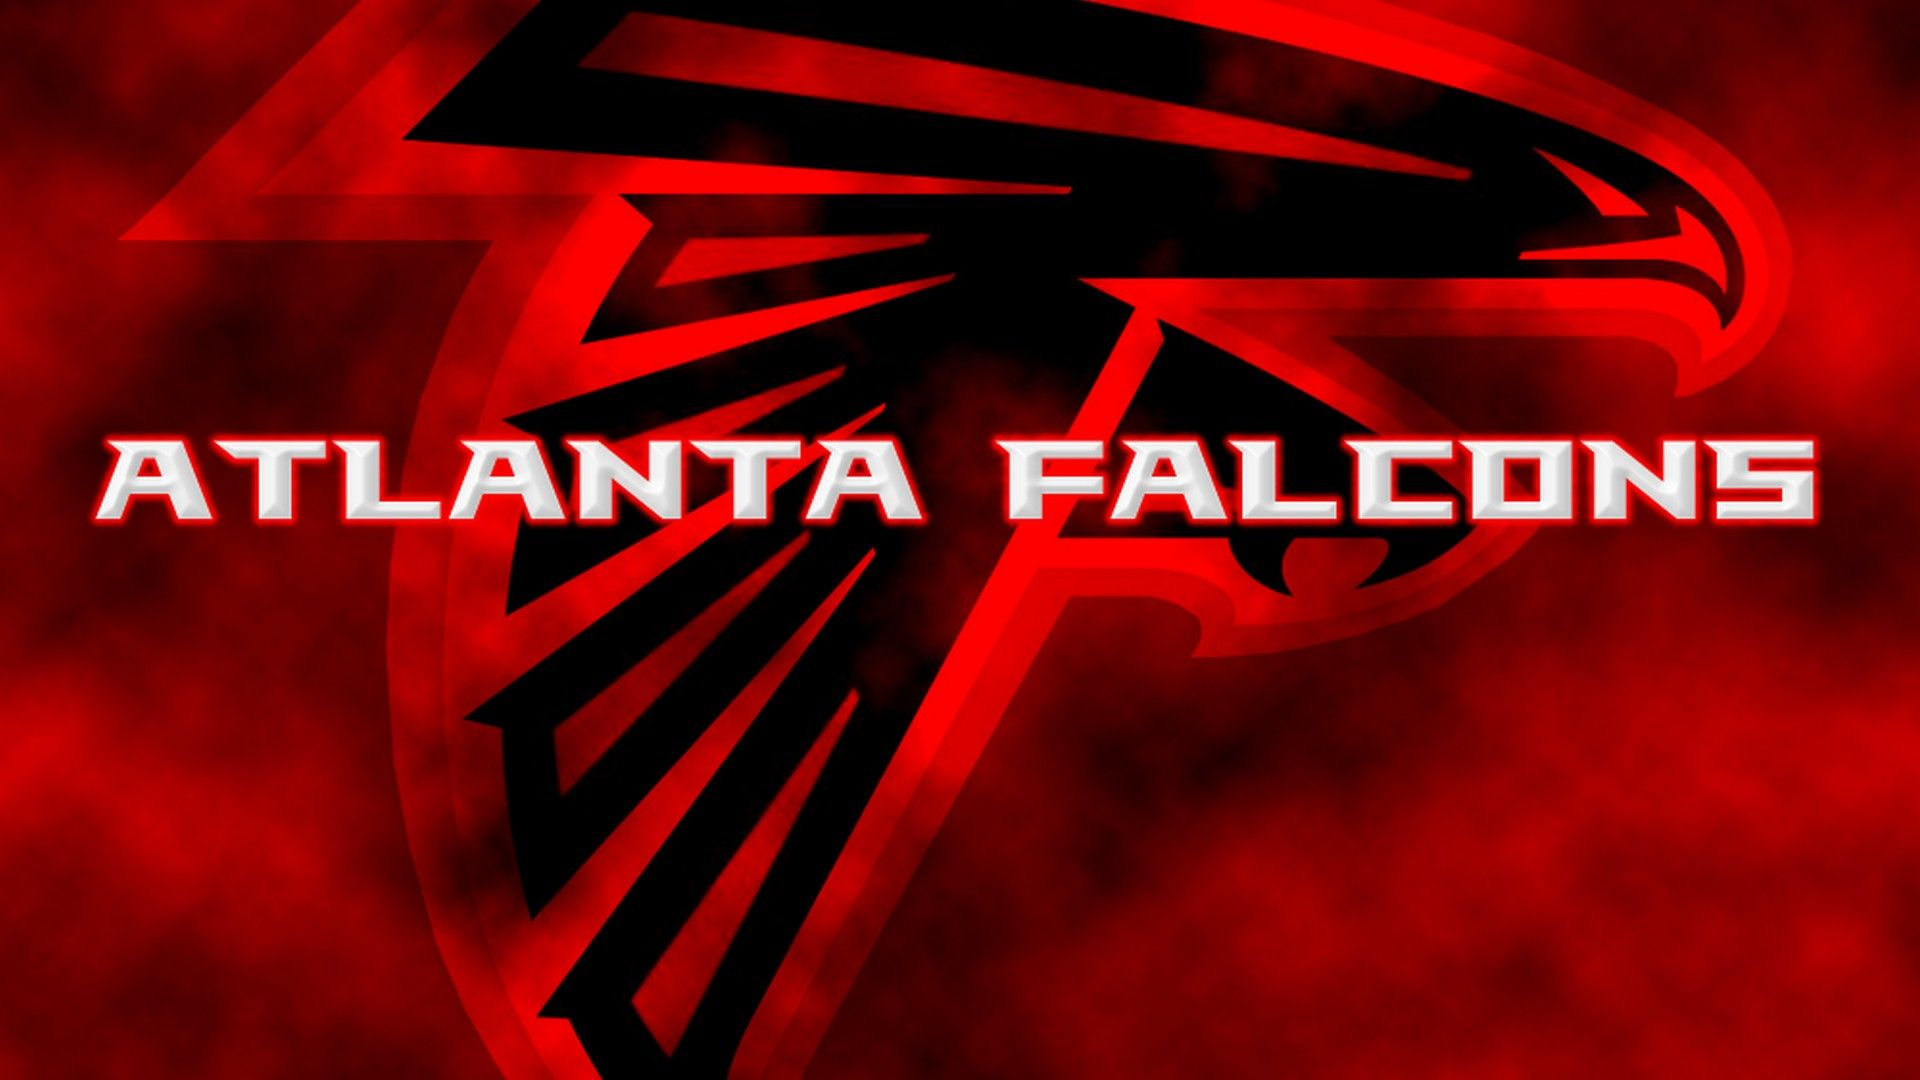 Nfl Wallpapers Atlanta Falcons Wallpaper Atlanta Falcons Atlanta Falcons Rise Up